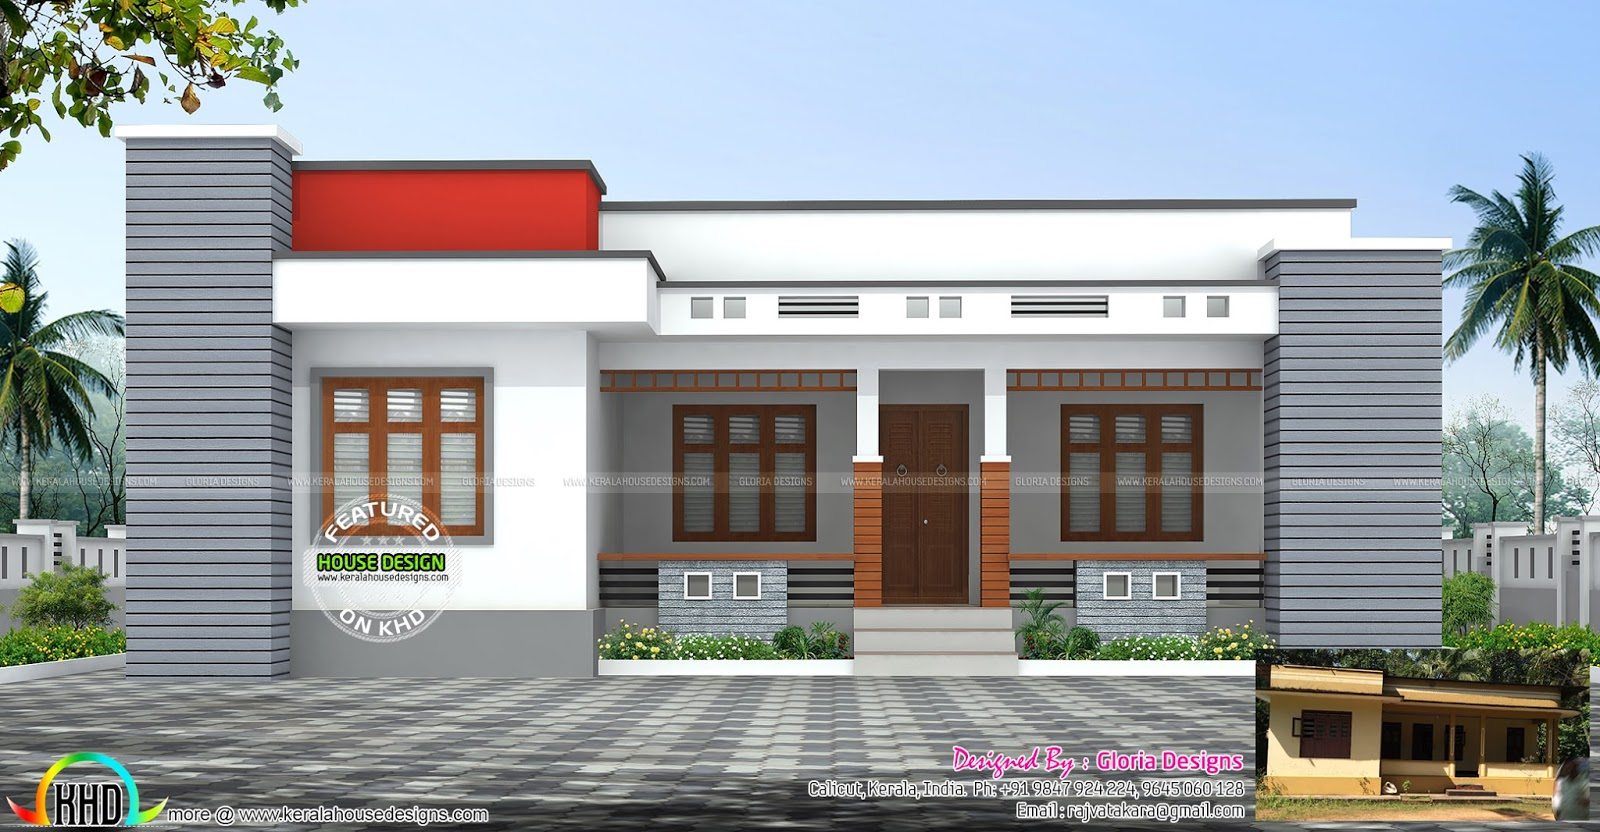 single floor house renovation plan kerala home design and floor